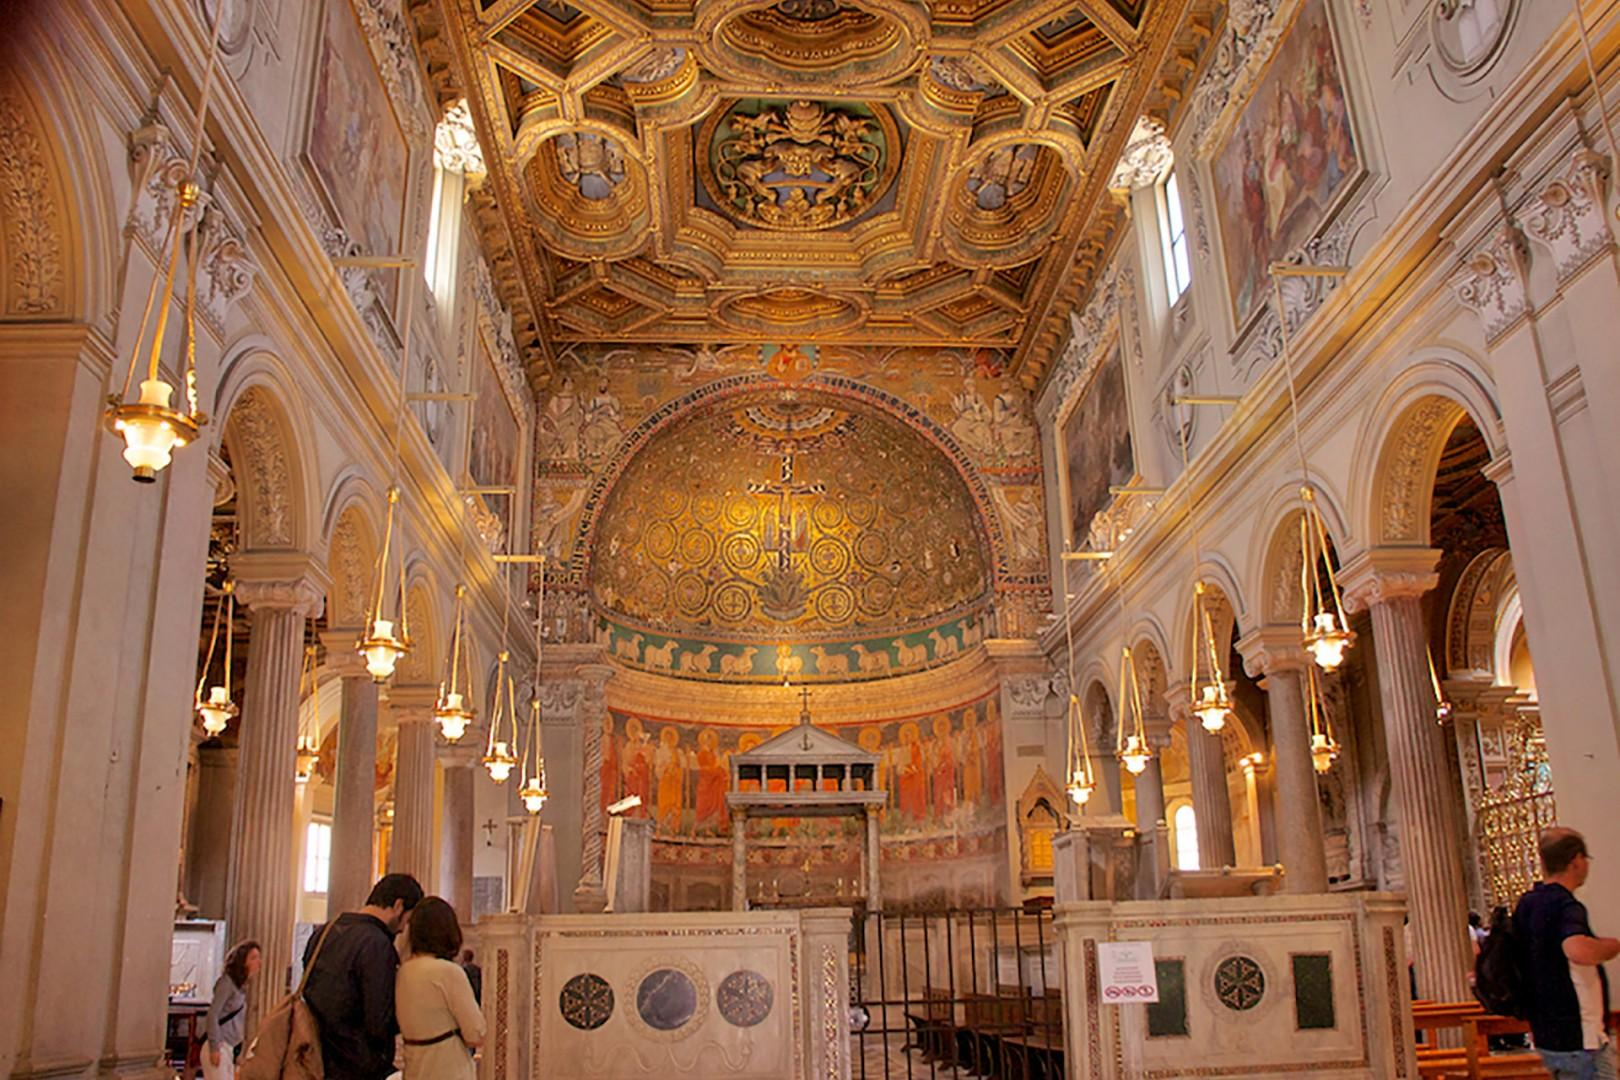 The cathedral of Saint Peter in Chains is around the corner.